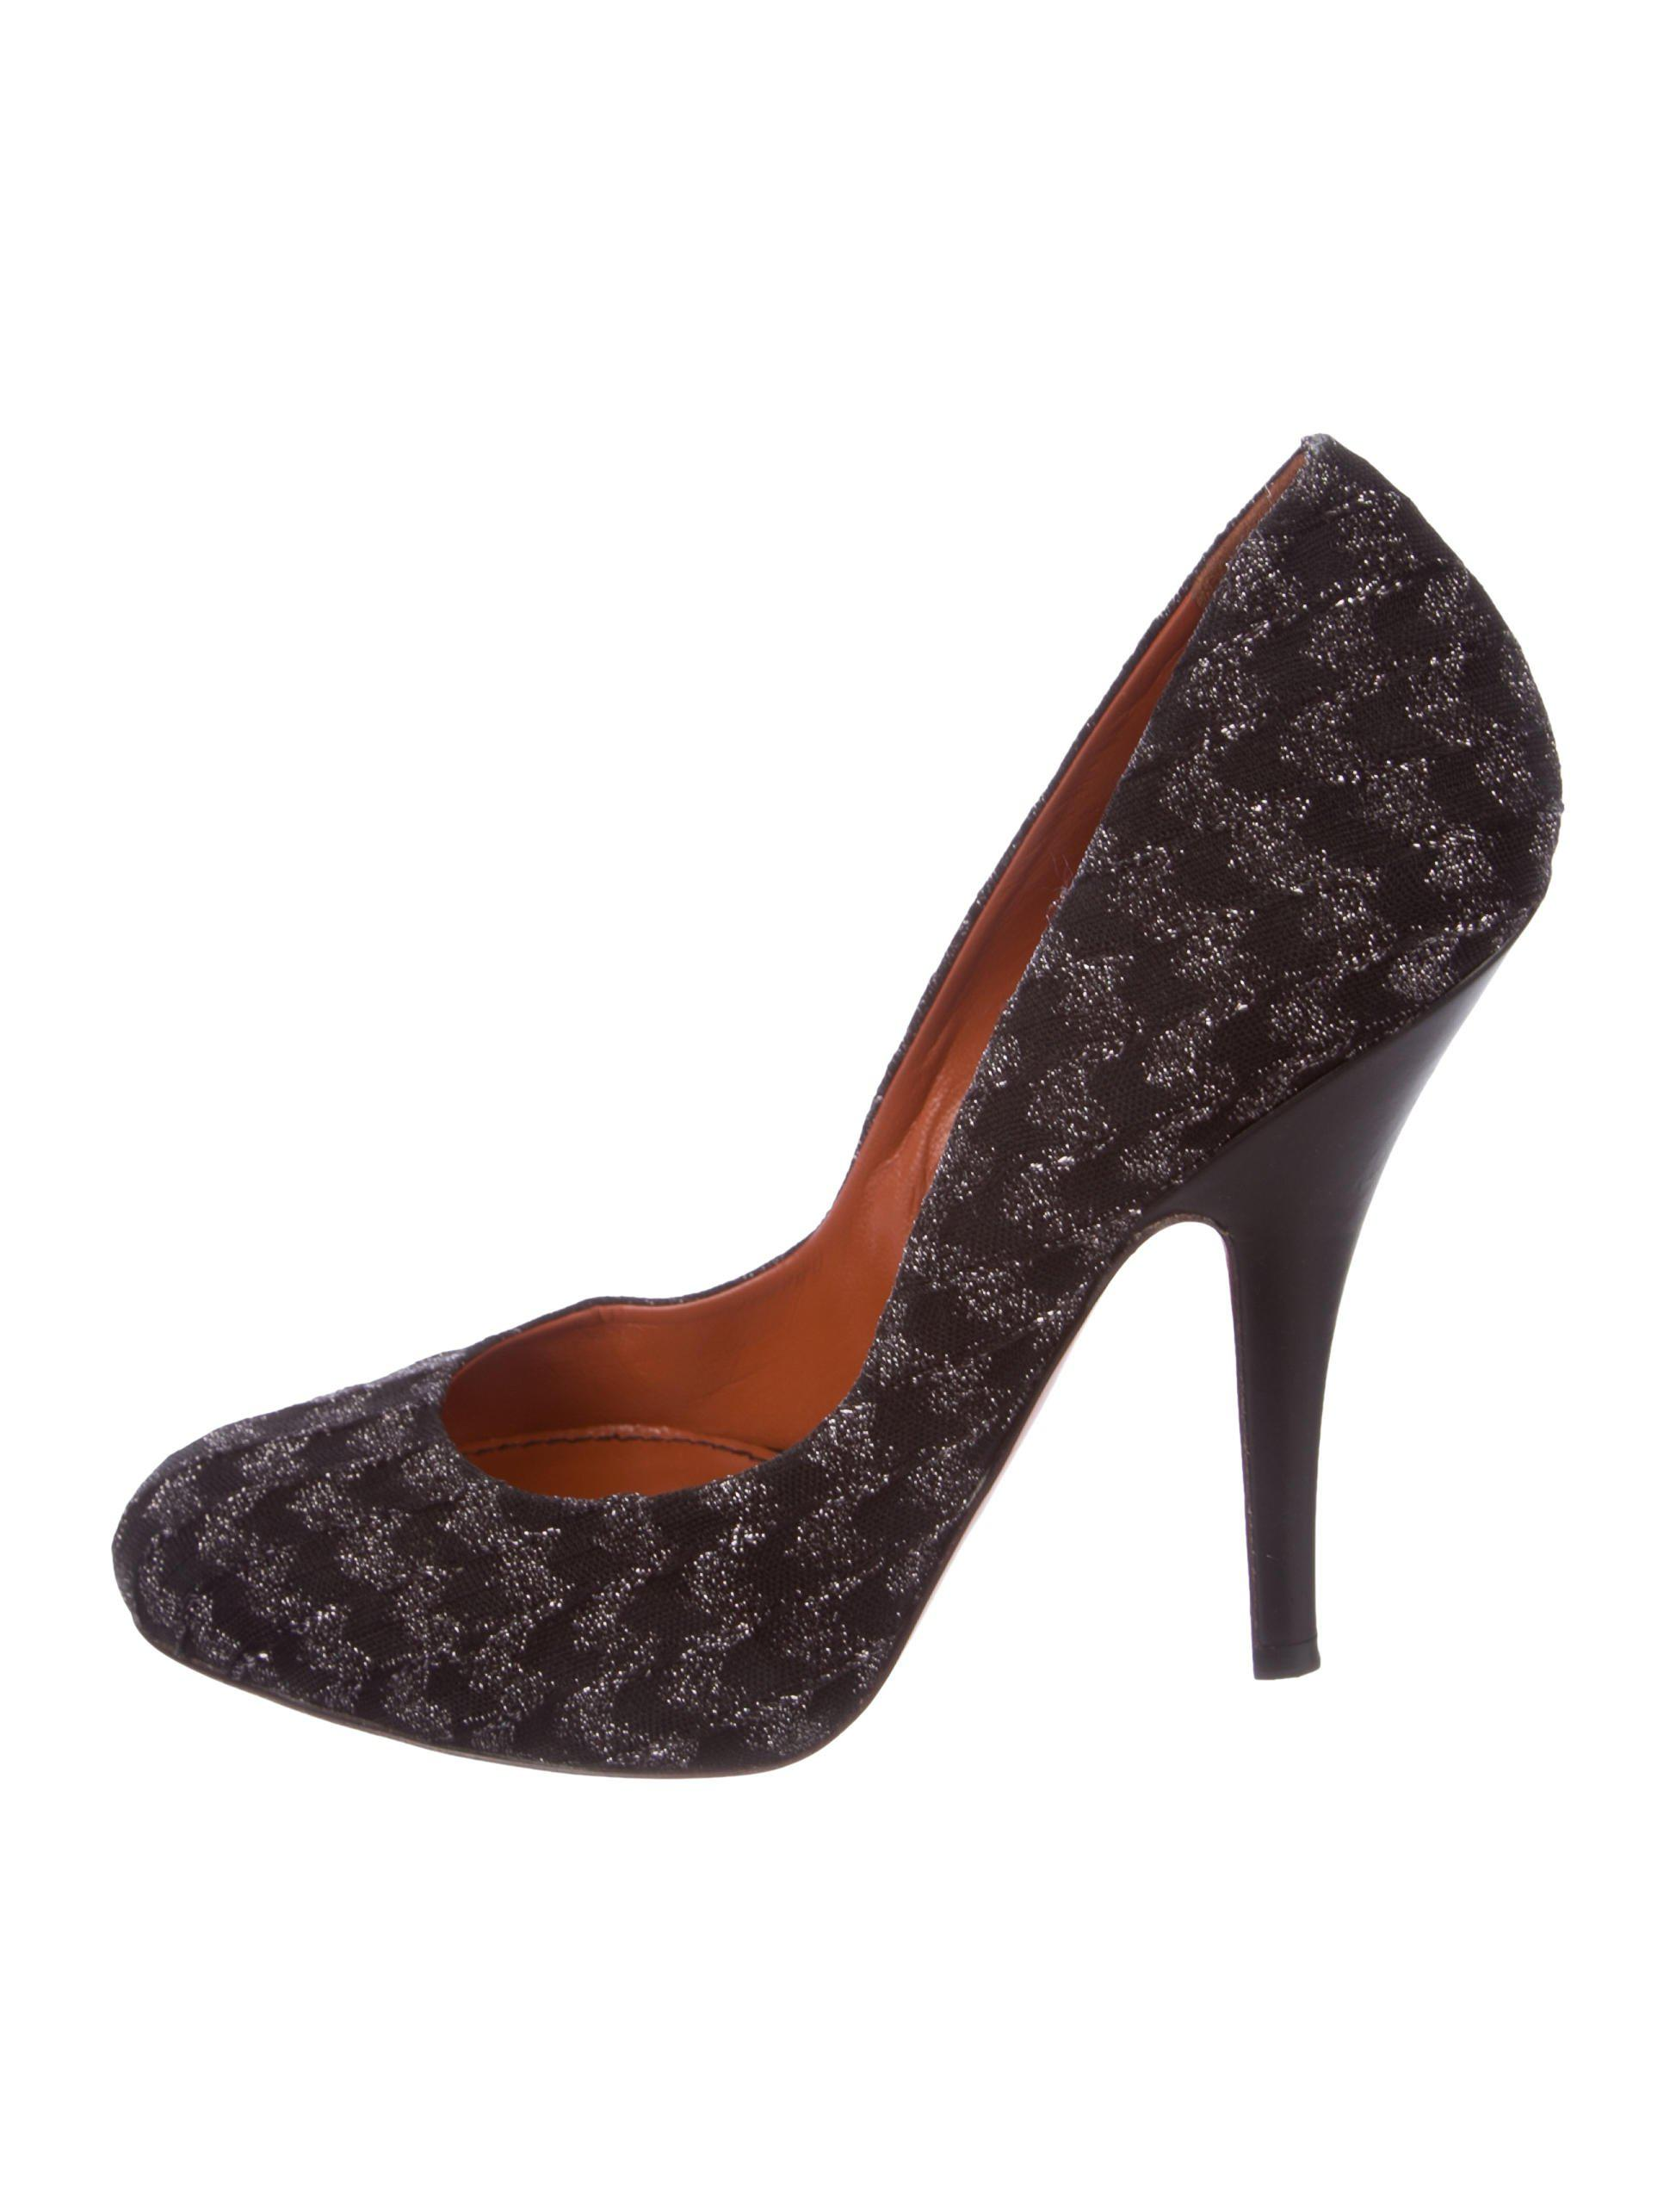 Missoni Round-Toe Woven Pumps free shipping big sale top quality for sale cheap sale pay with visa sale choice discount professional LzqQeRuw